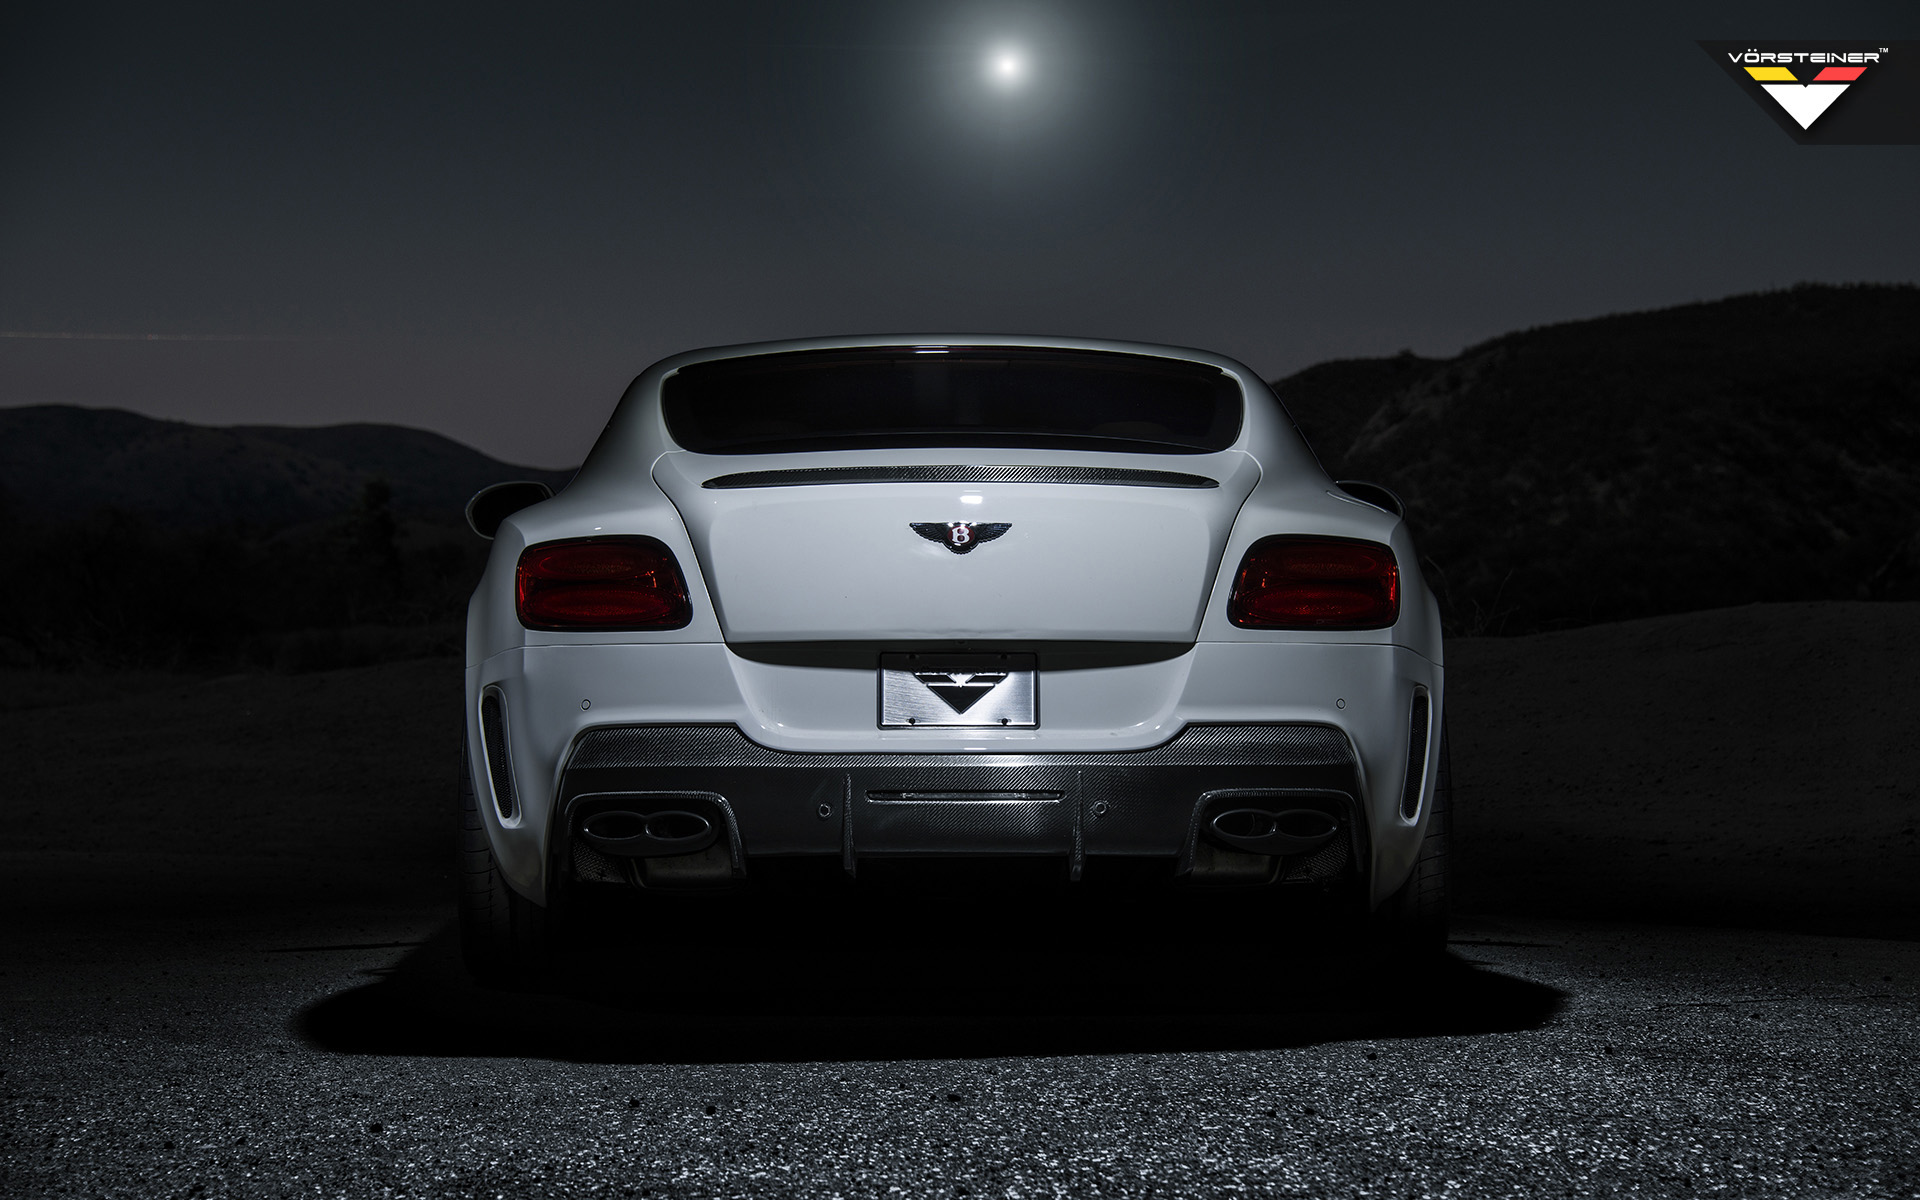 1920x1200 - Bentley Continental GT Wallpapers 24